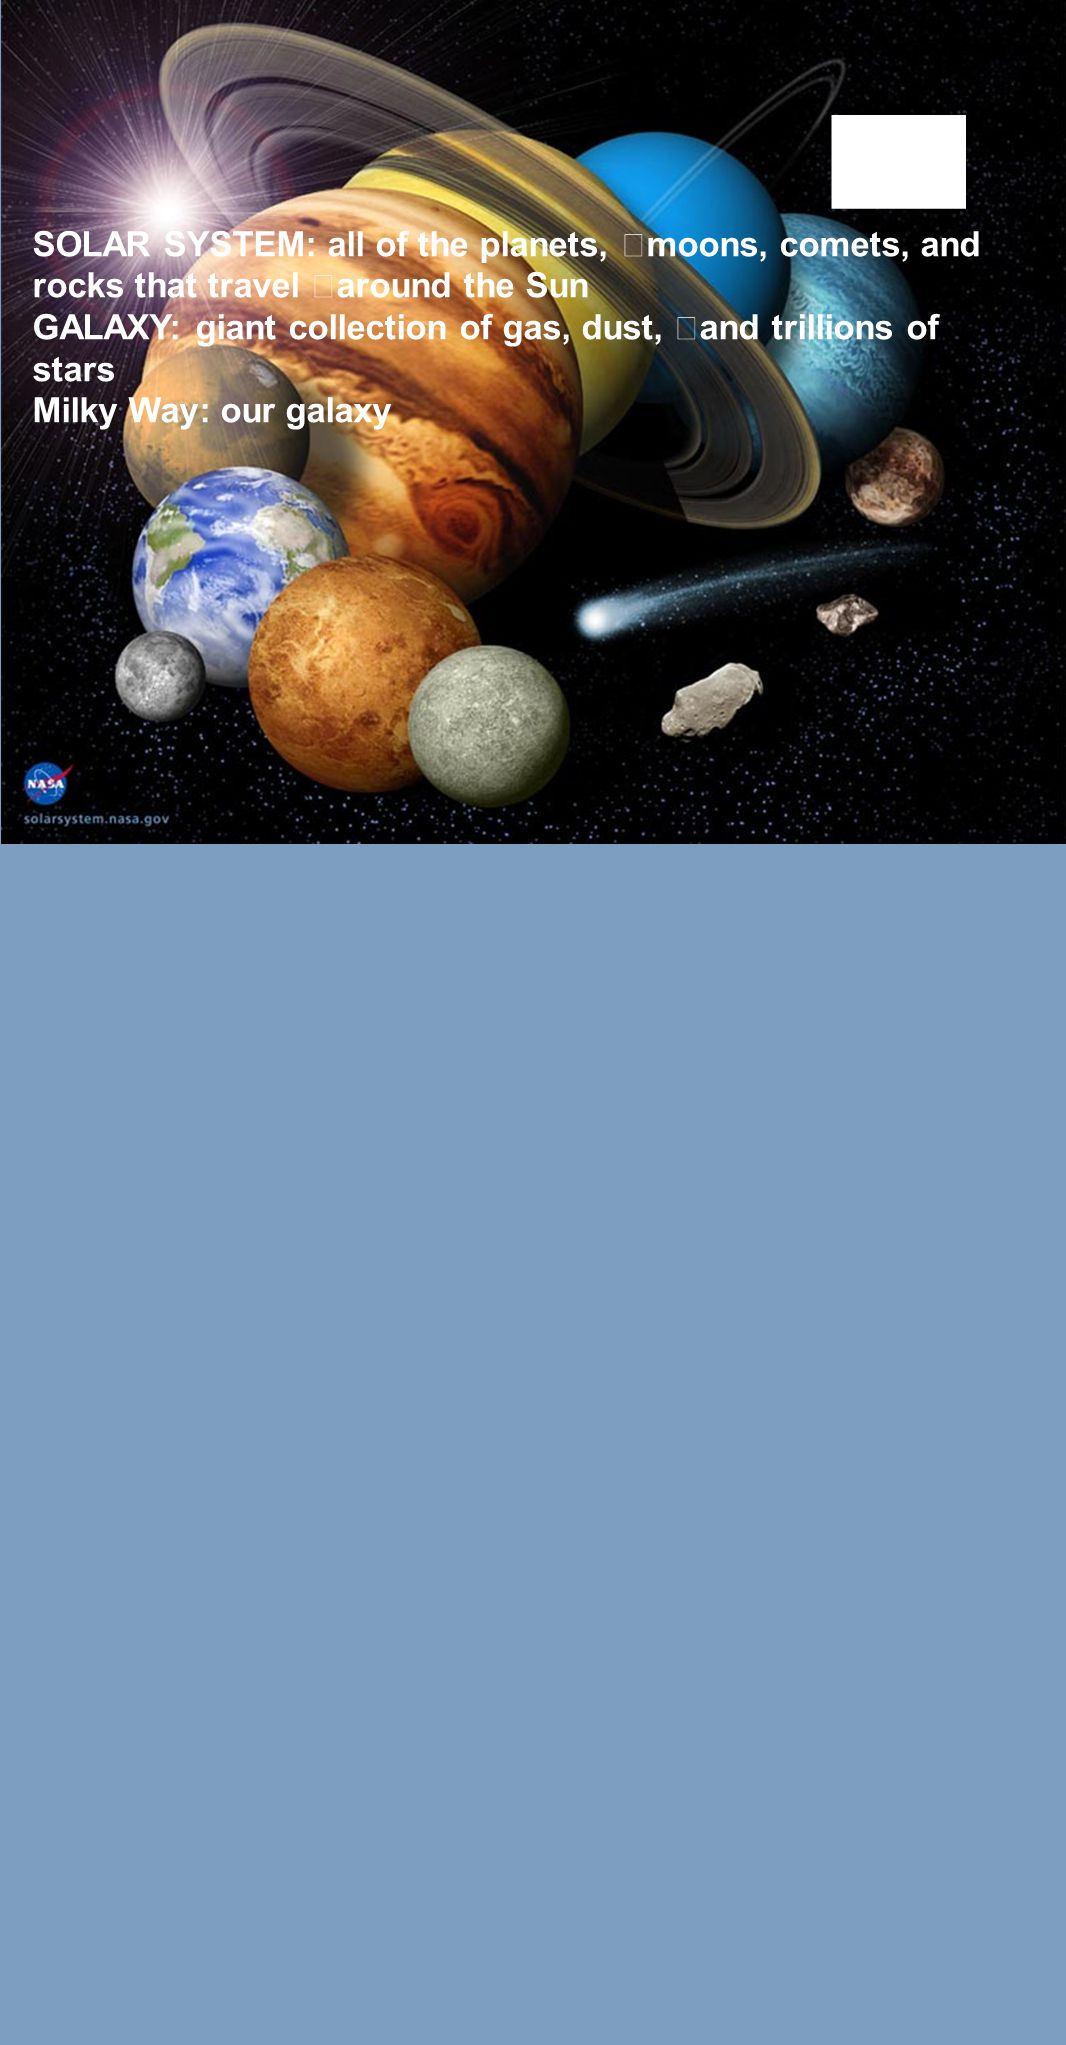 SOLAR SYSTEM: all of the planets, moons, comets, and rocks that travel around the Sun